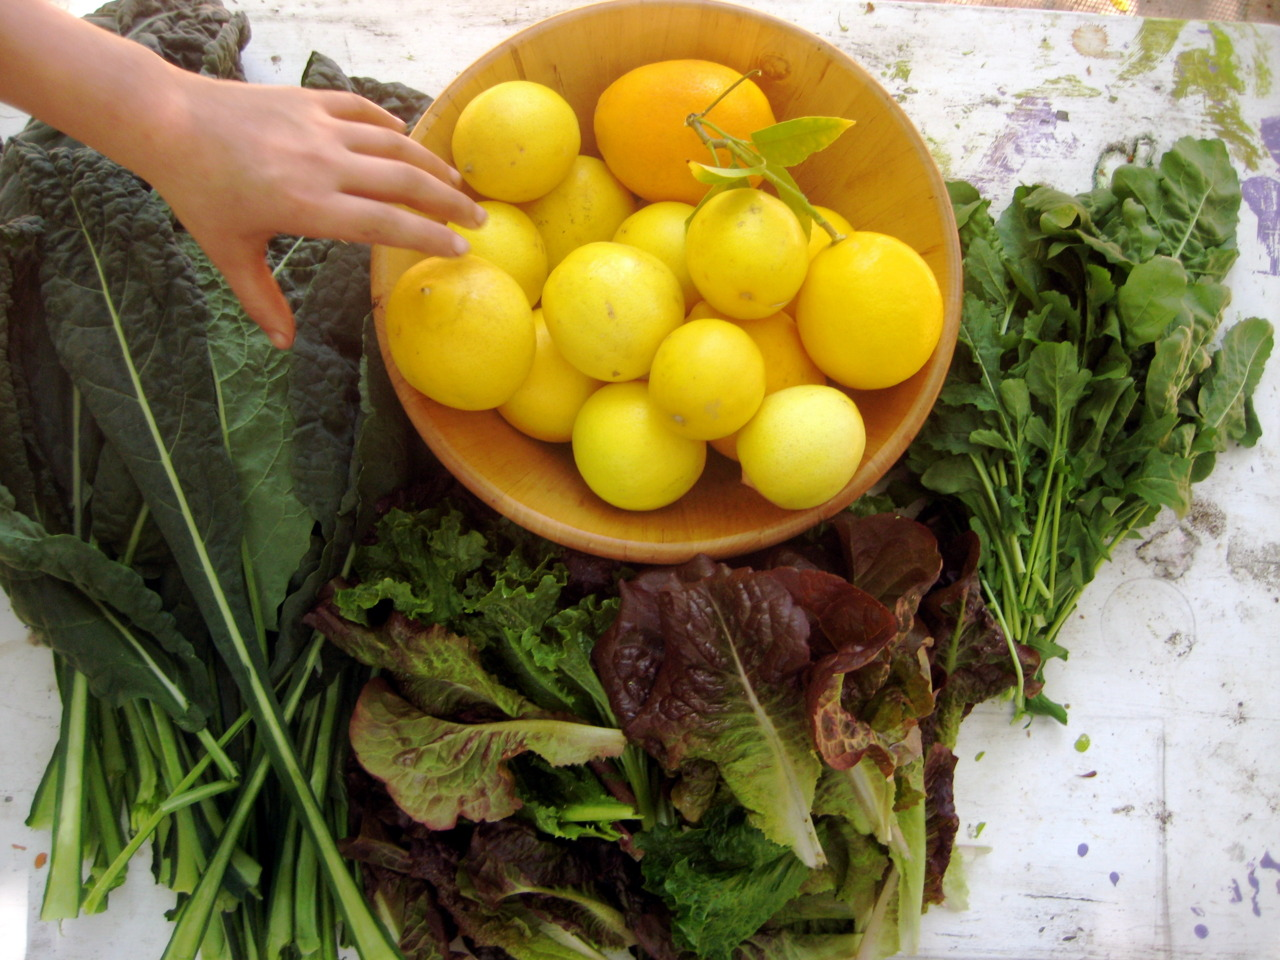 ediblegardensla: Harvesting kale, wild arugula, lettuce and lemons in a garden in Outpost Canyon.